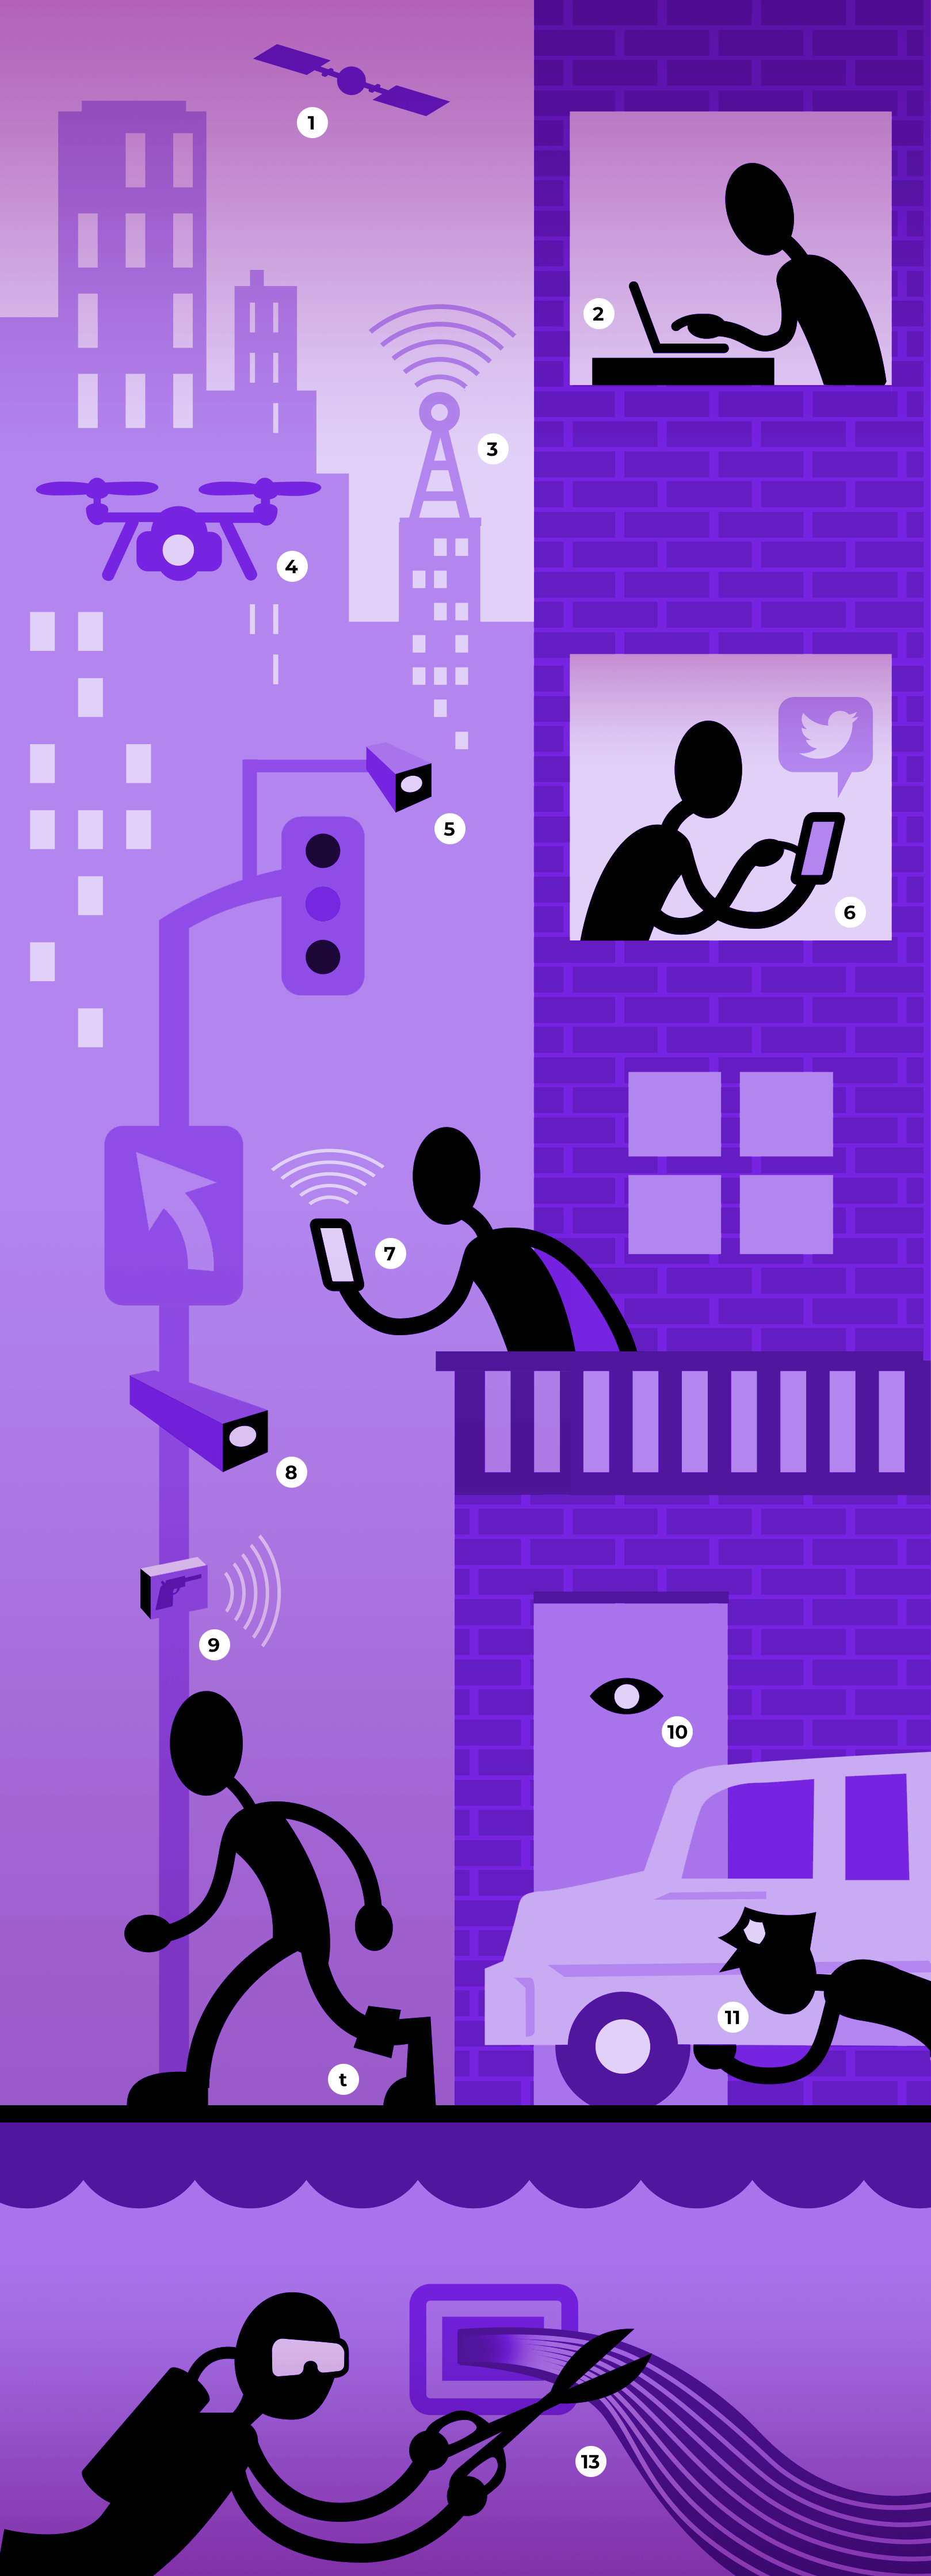 A cityscape showing 13 types of common surveillance